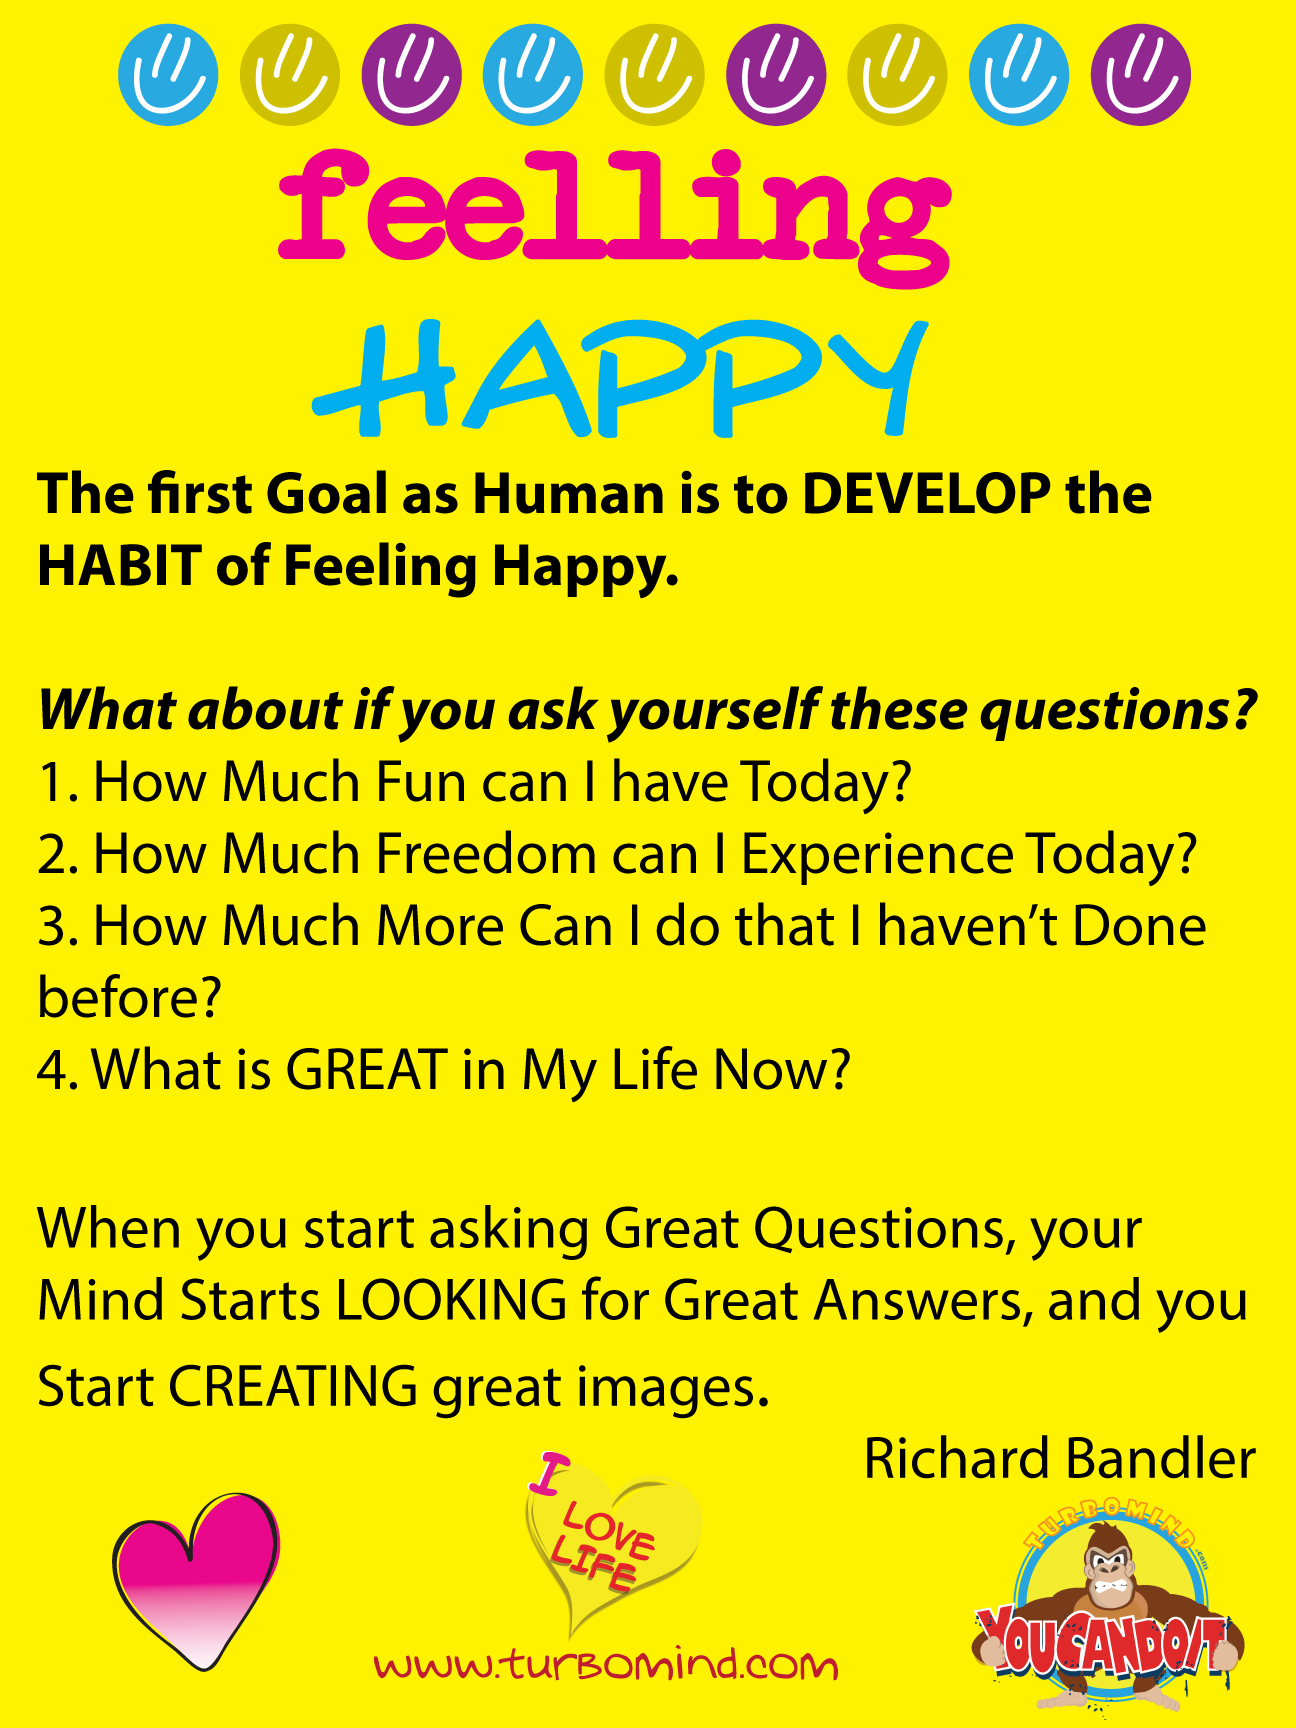 """Get the Life You Want"", by Richard Bandler, TURBOMIND.com Book Summary and Discussion."